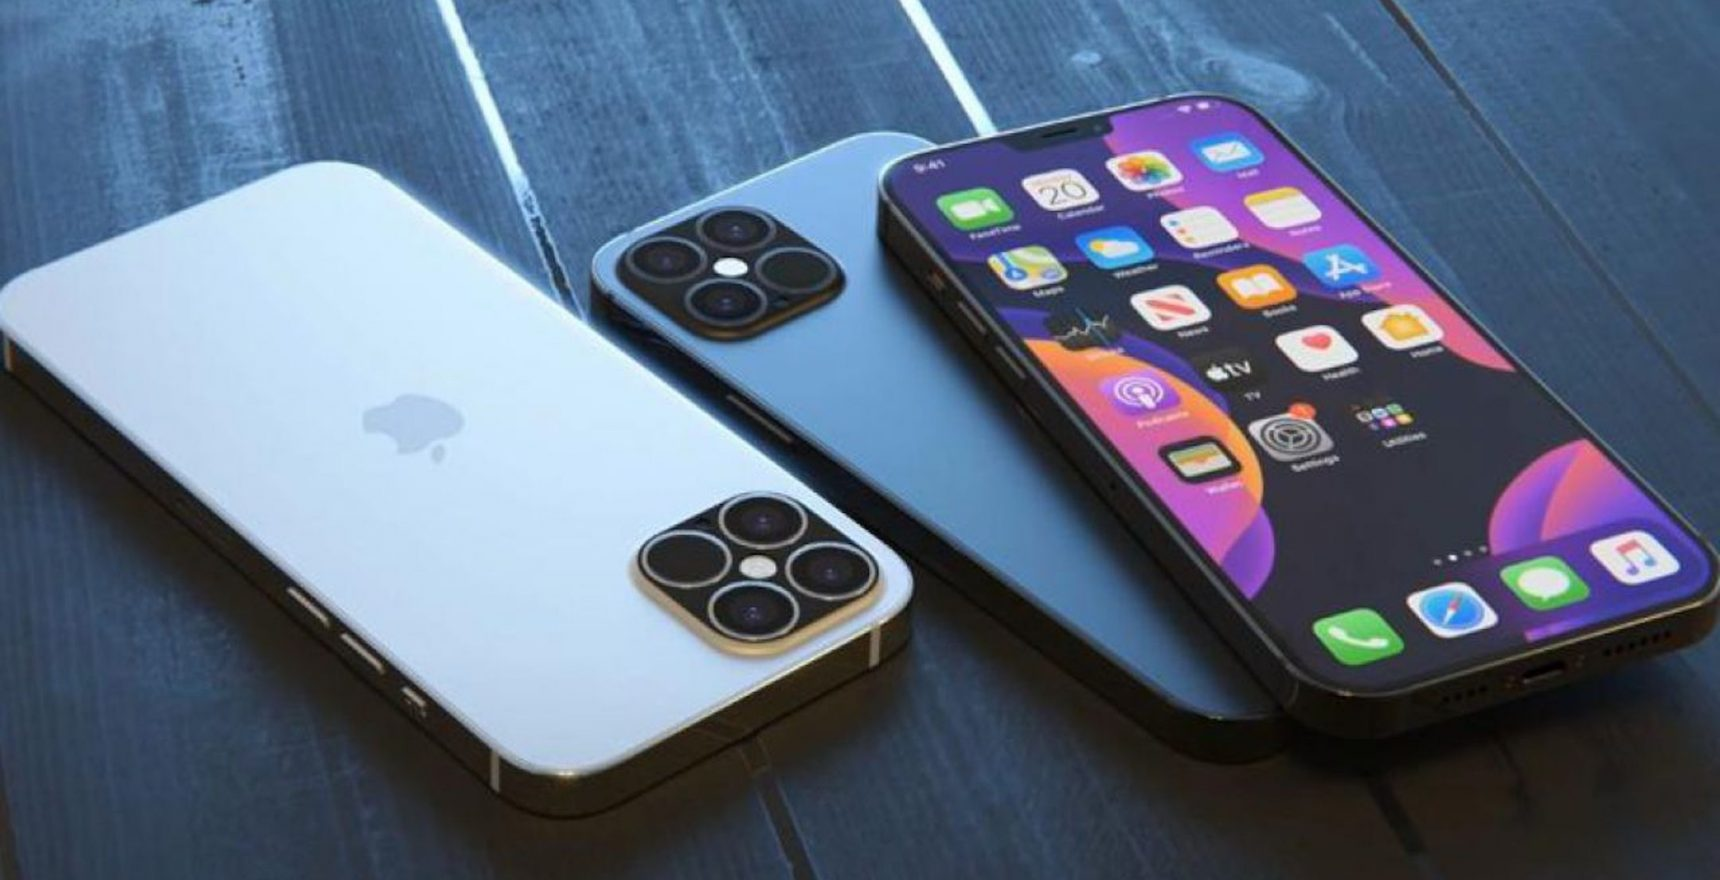 After 4 generations of phones, Apple will finally reduce the size of the screen bangs with the iPhone 12s / iPhone 13